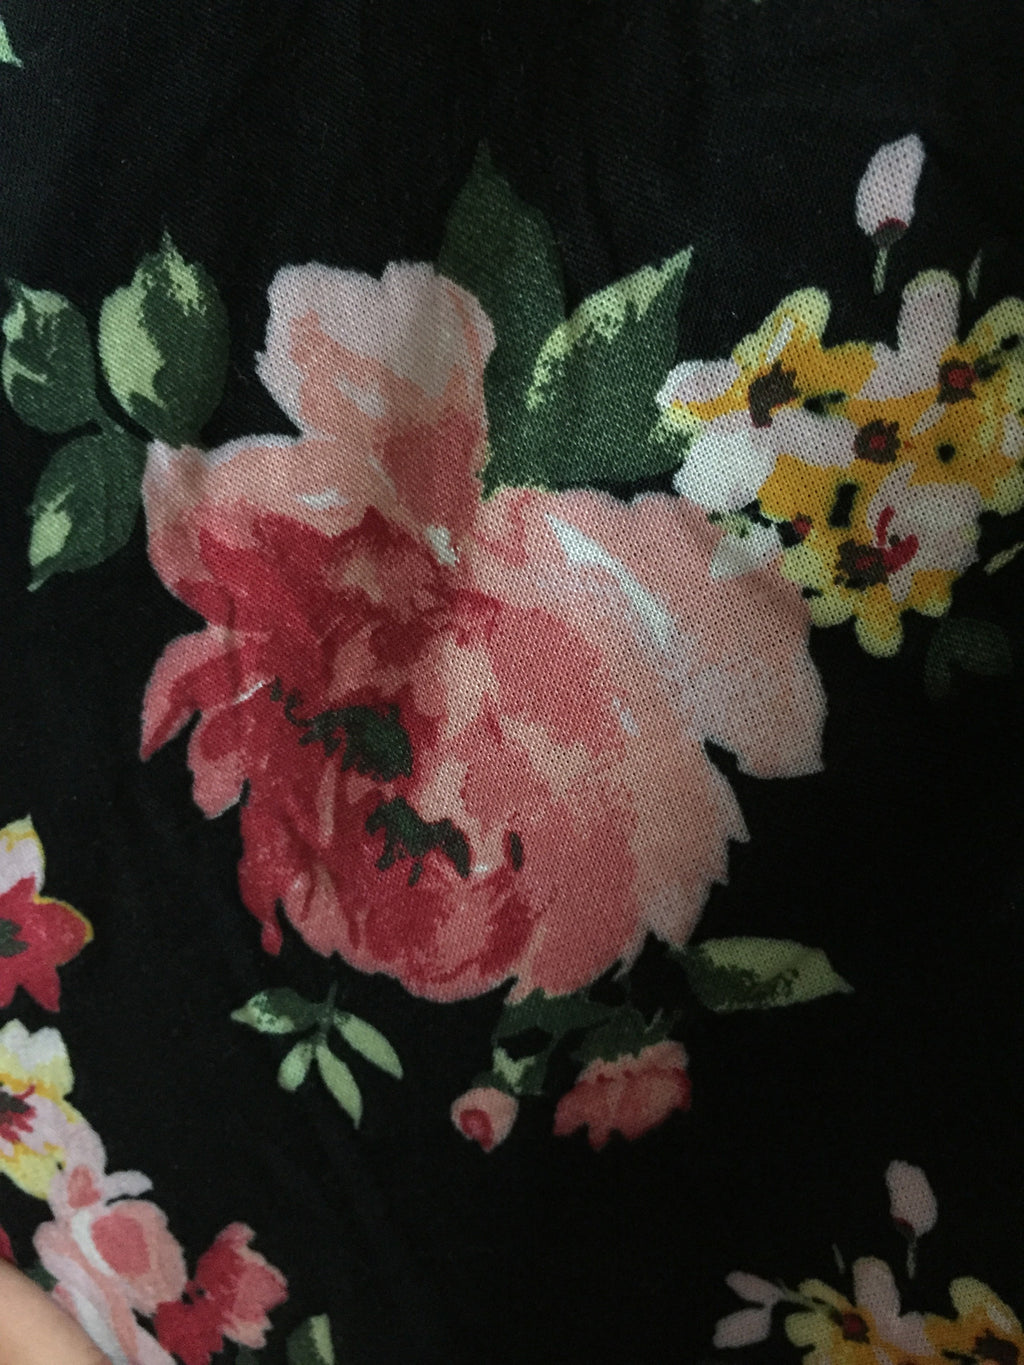 Big Red Flowers on Black Shrug with Tassels - #FTFY - For The Fun Years